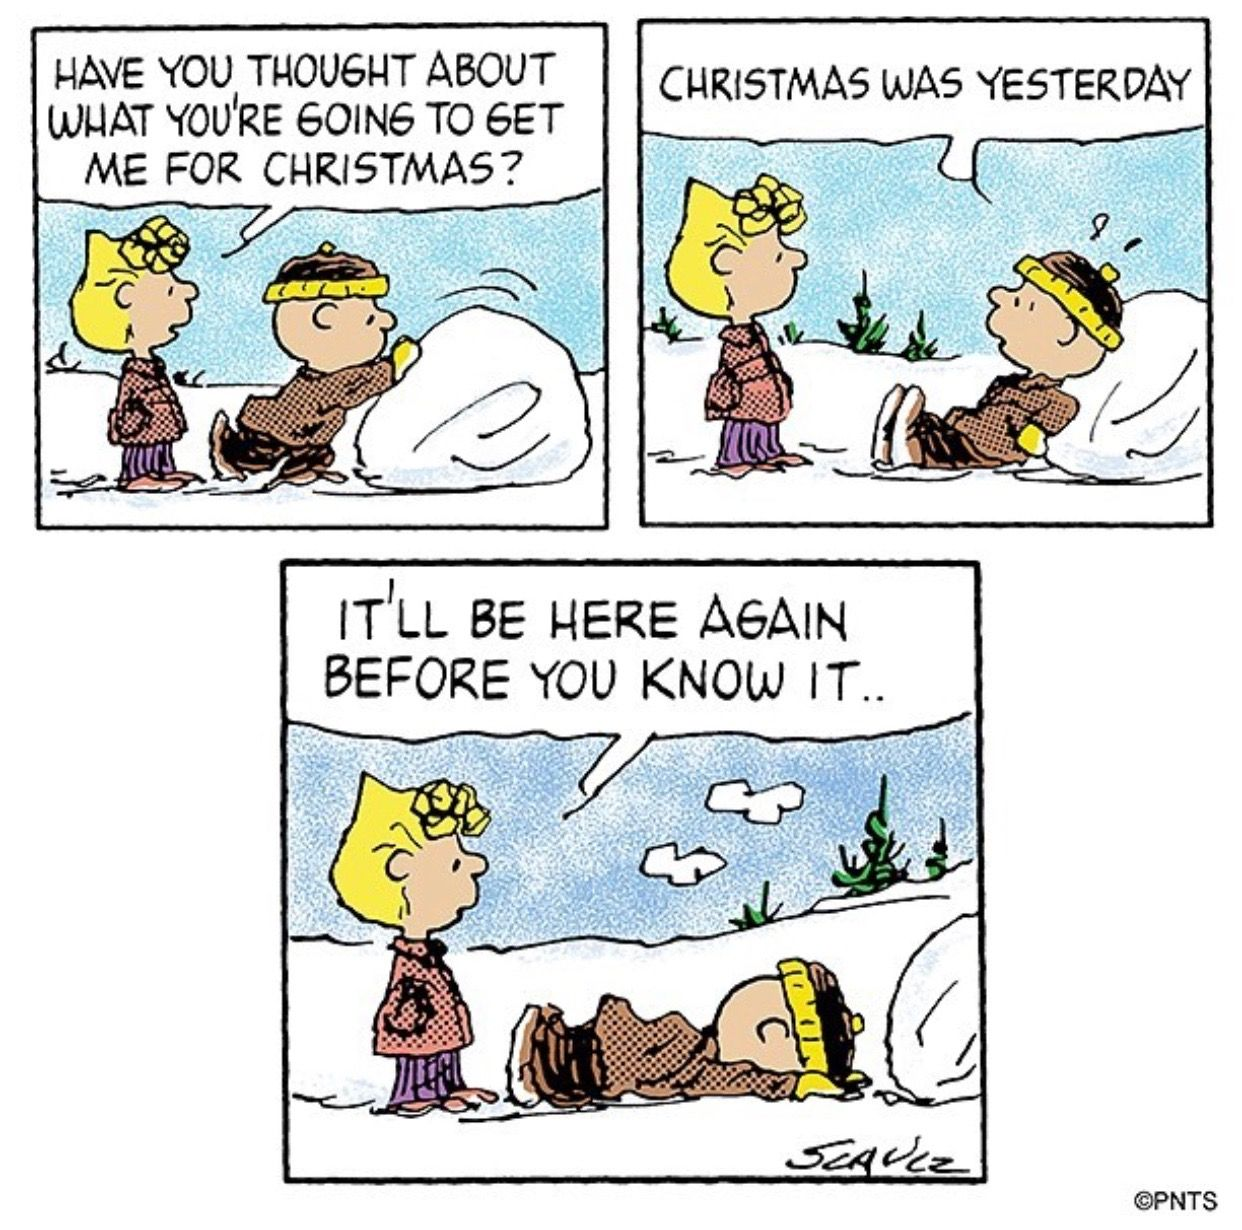 Pin by Wendi Schuster Cozzi on Snoopy | Pinterest